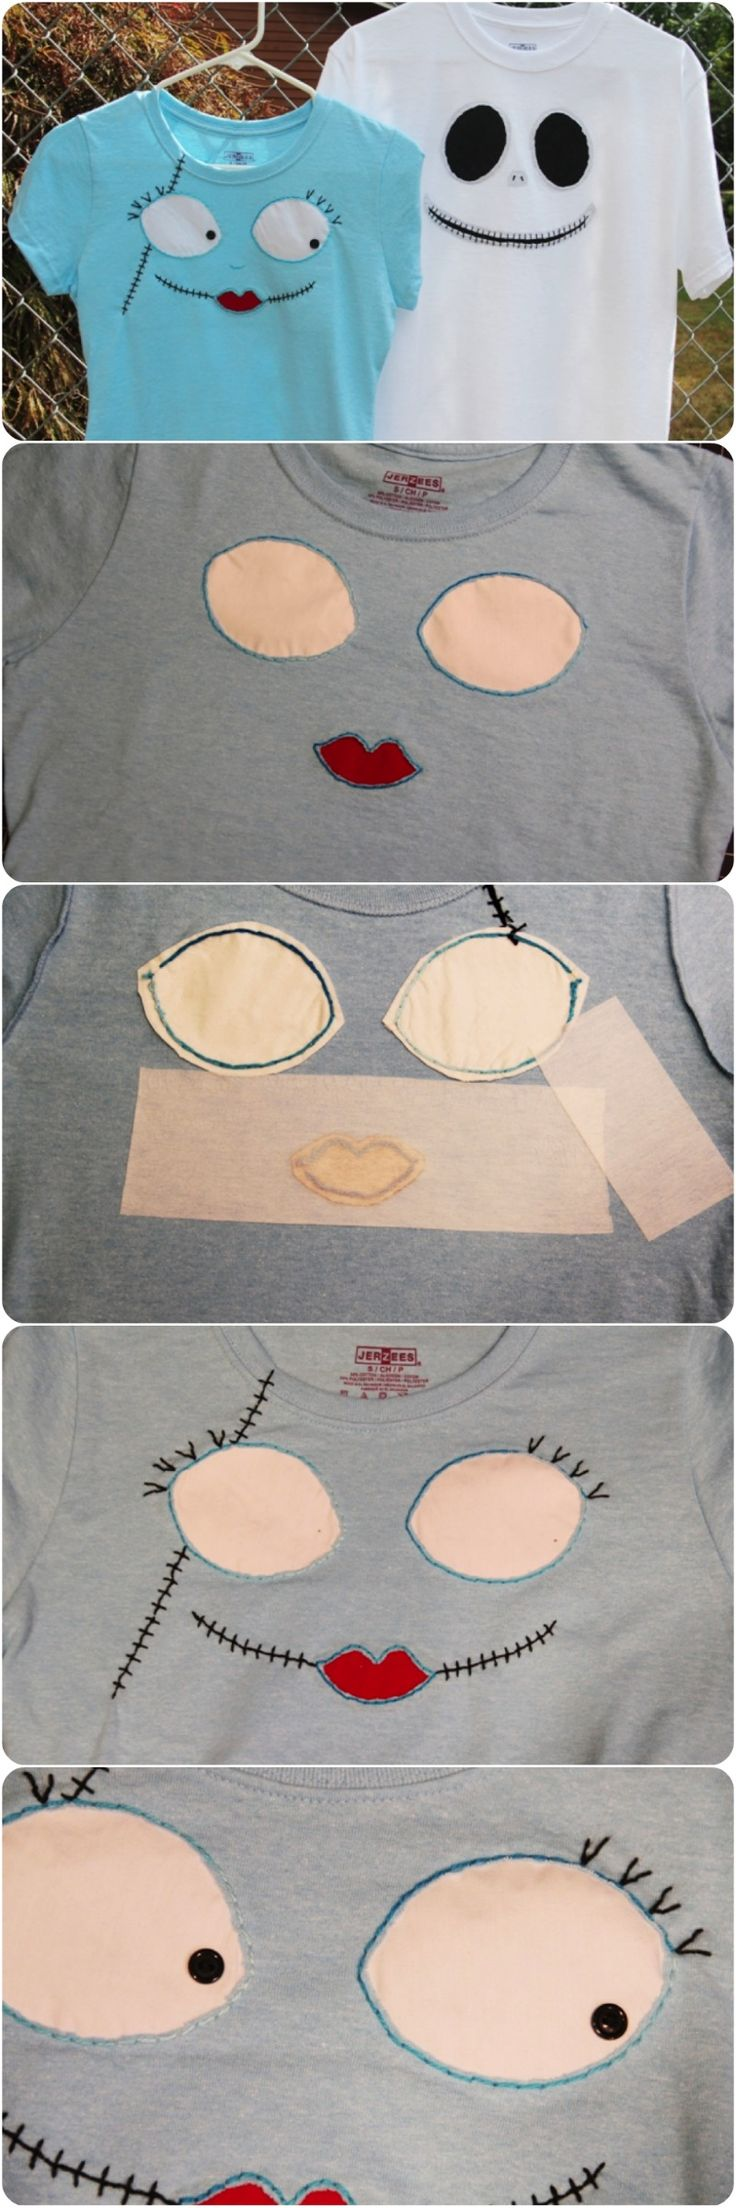 A Disney craft project in time for Mickey's #NotSoScary Halloween Party! See step-by-step instructions on how to make these Jack Skellington & Sally t-shirts via @Undercover Tourist #DIY #Disney http://blog.undercovertourist.com/2013/09/disney-craft-jack-skellington-sally-t-shirts-in-time-for-mickeys-not-so-scary-halloween-party/